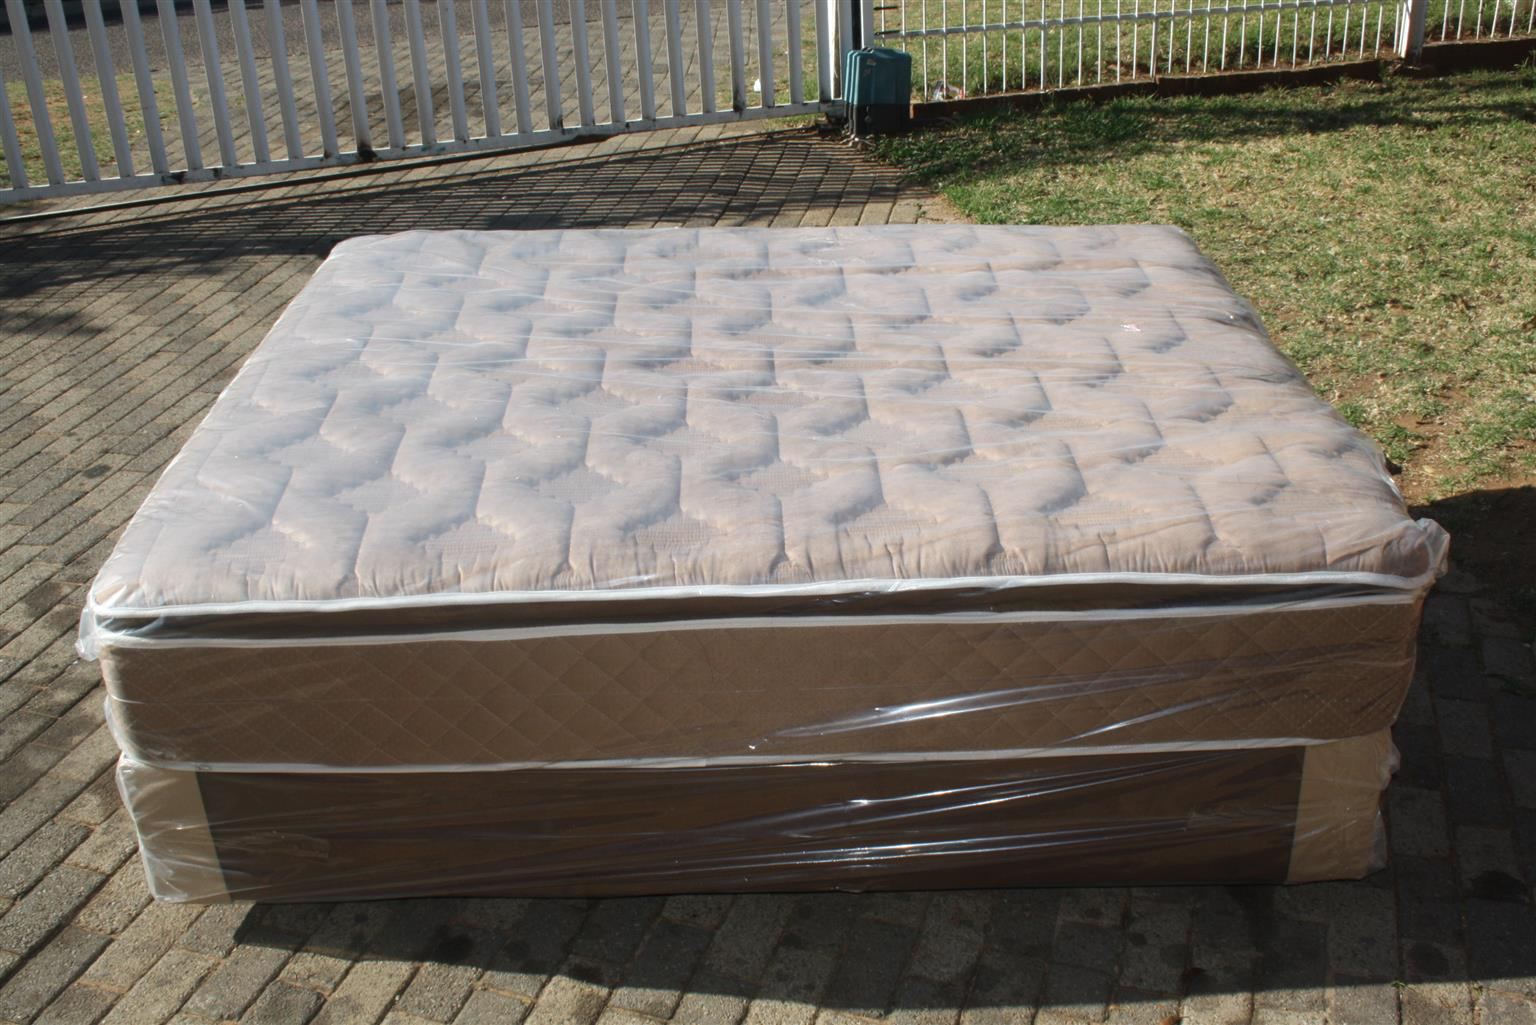 New King Size Restonic/Edblo/Sleepmasters/Comfy Max/Sealy Beds from R3900